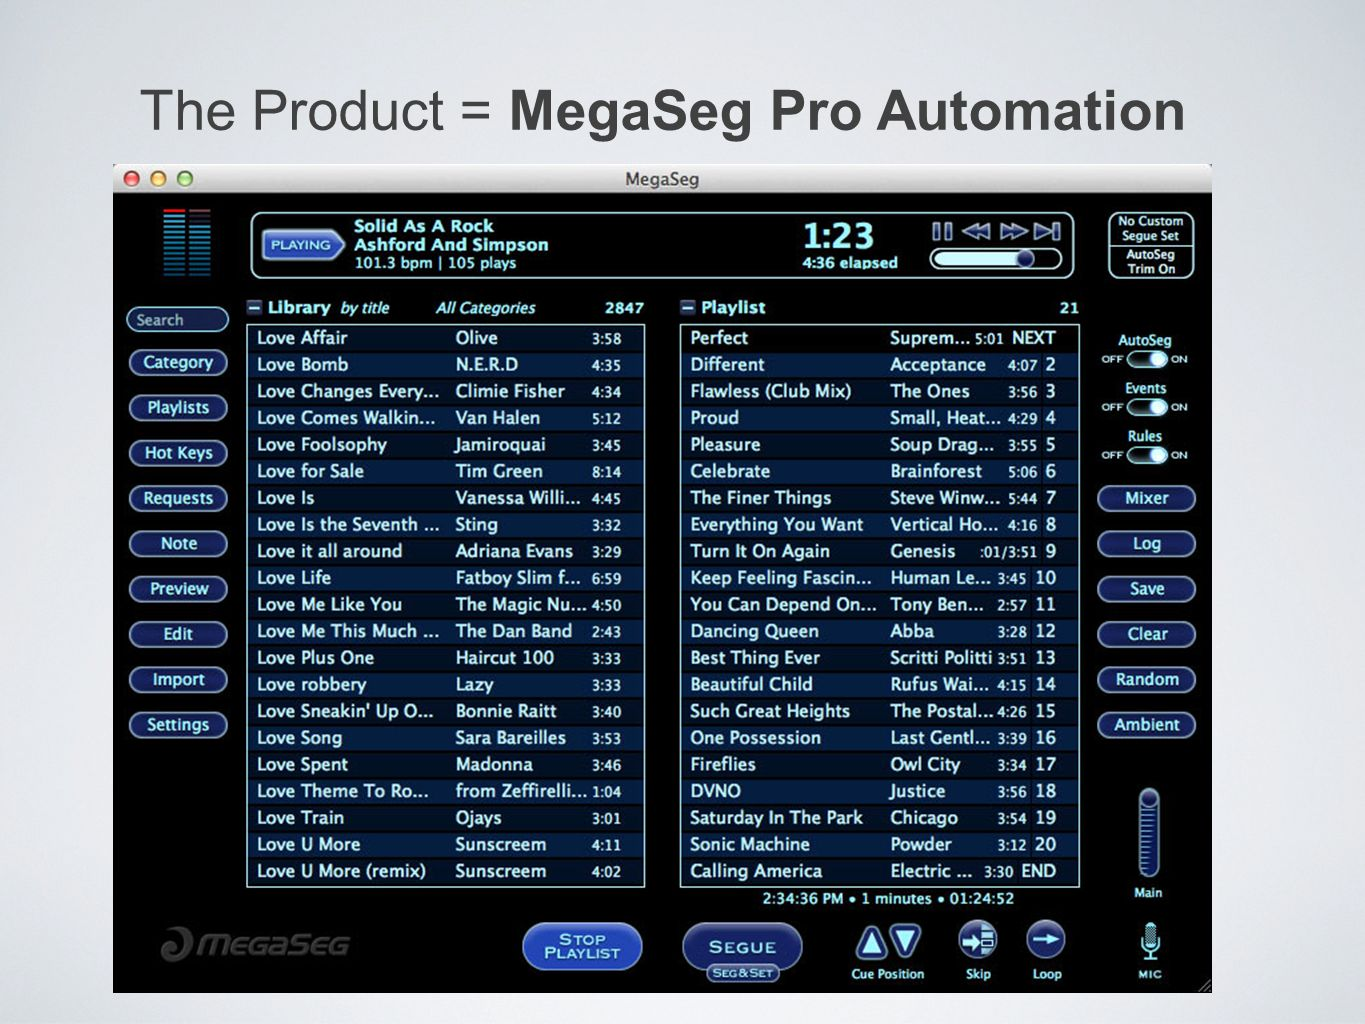 The Product = MegaSeg Pro Automation